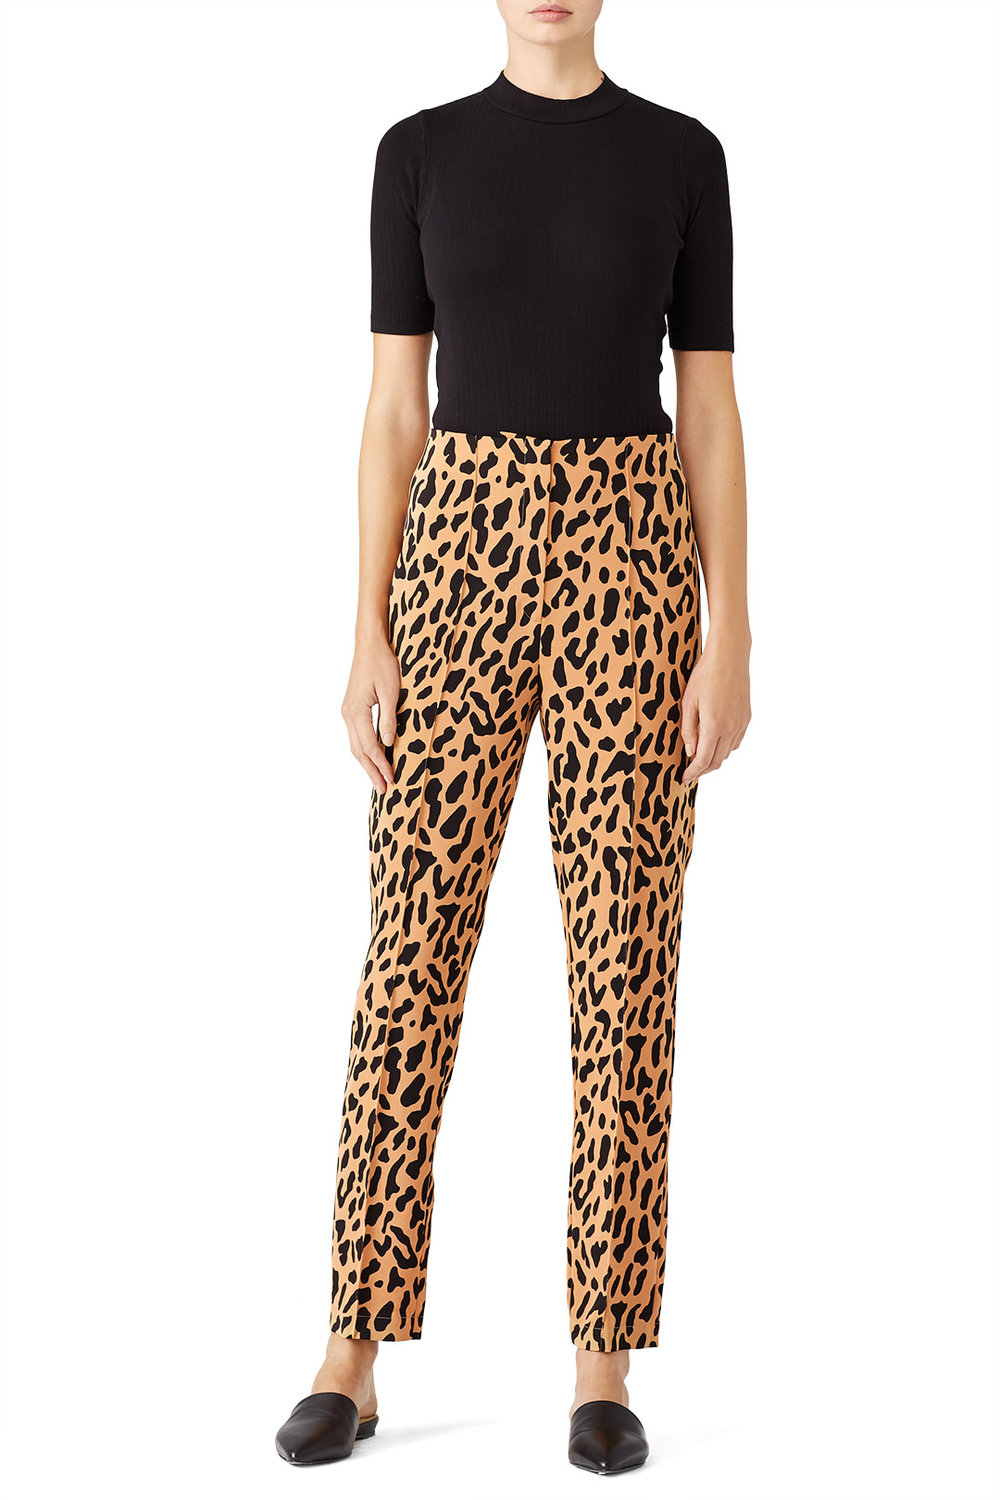 Diane von Furstenberg Leopard Skinny Pant - These scream out on the prowl…